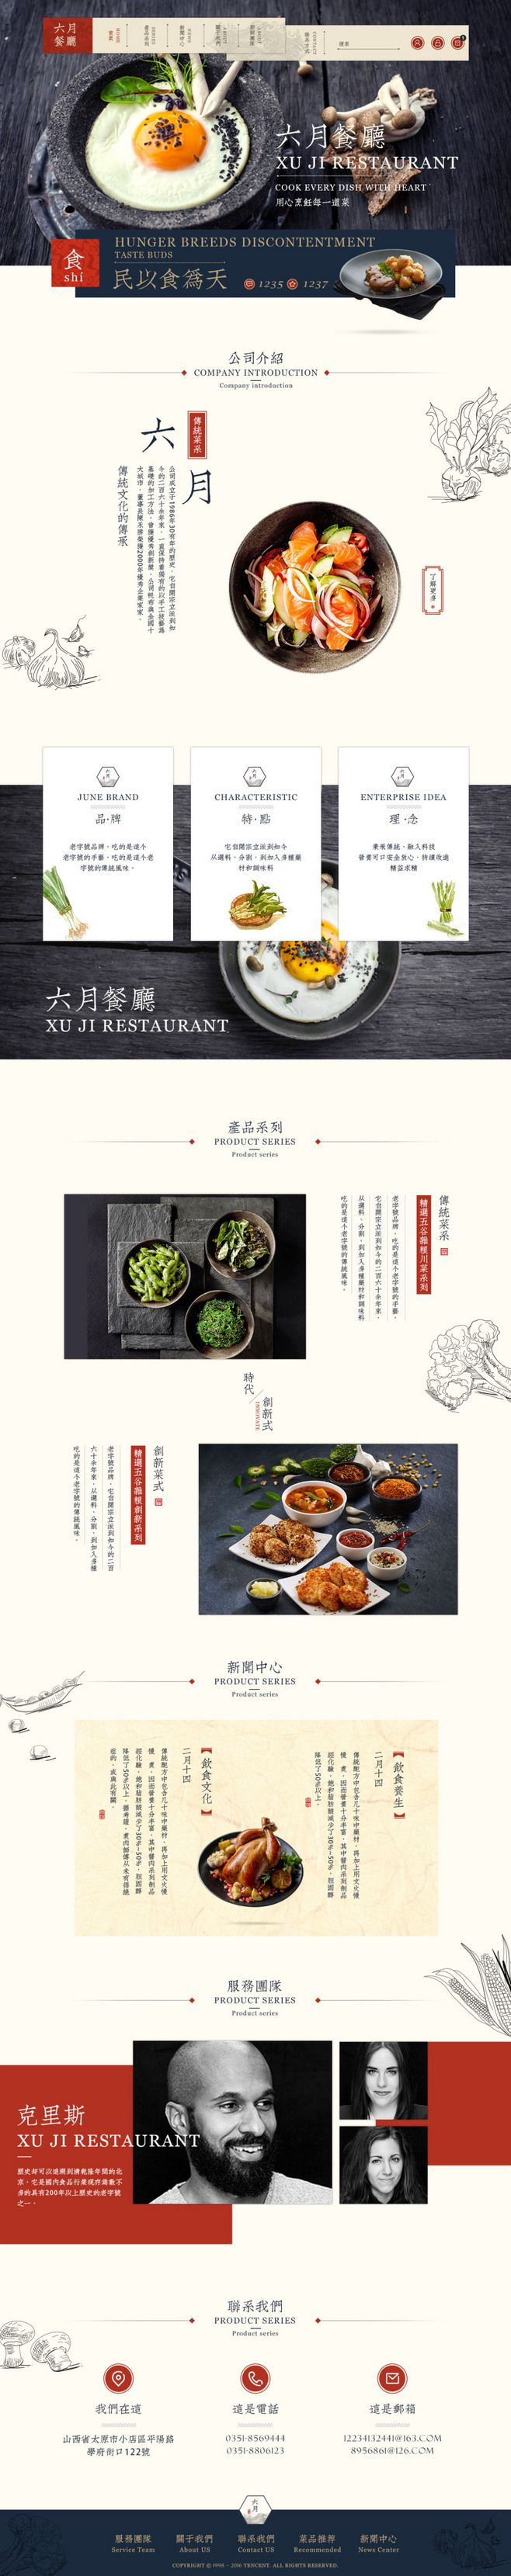 Original works: Jun Restaurant # # Chinese style business website